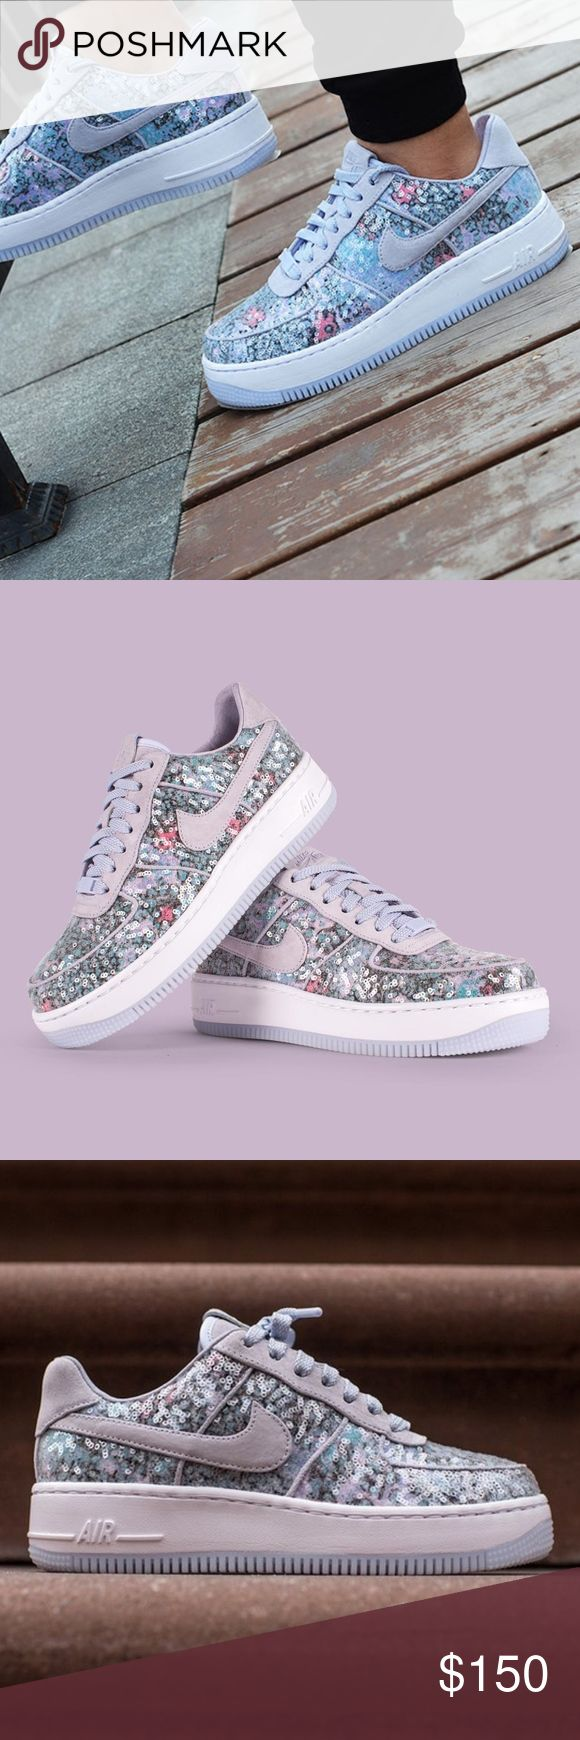 """Women's Nike Air Force 1 """"Glass Slipper"""" (Size 8) Women's Nike AIr Force 1 Upstep 35 """"Glass Slipper""""  Brand New in box 100% authentic Excellent condition Size 8 women Palest Purple/ White Color way Ships doubled boxed Secured Packaging Same day/next day shipping Nike Shoes Sneakers"""